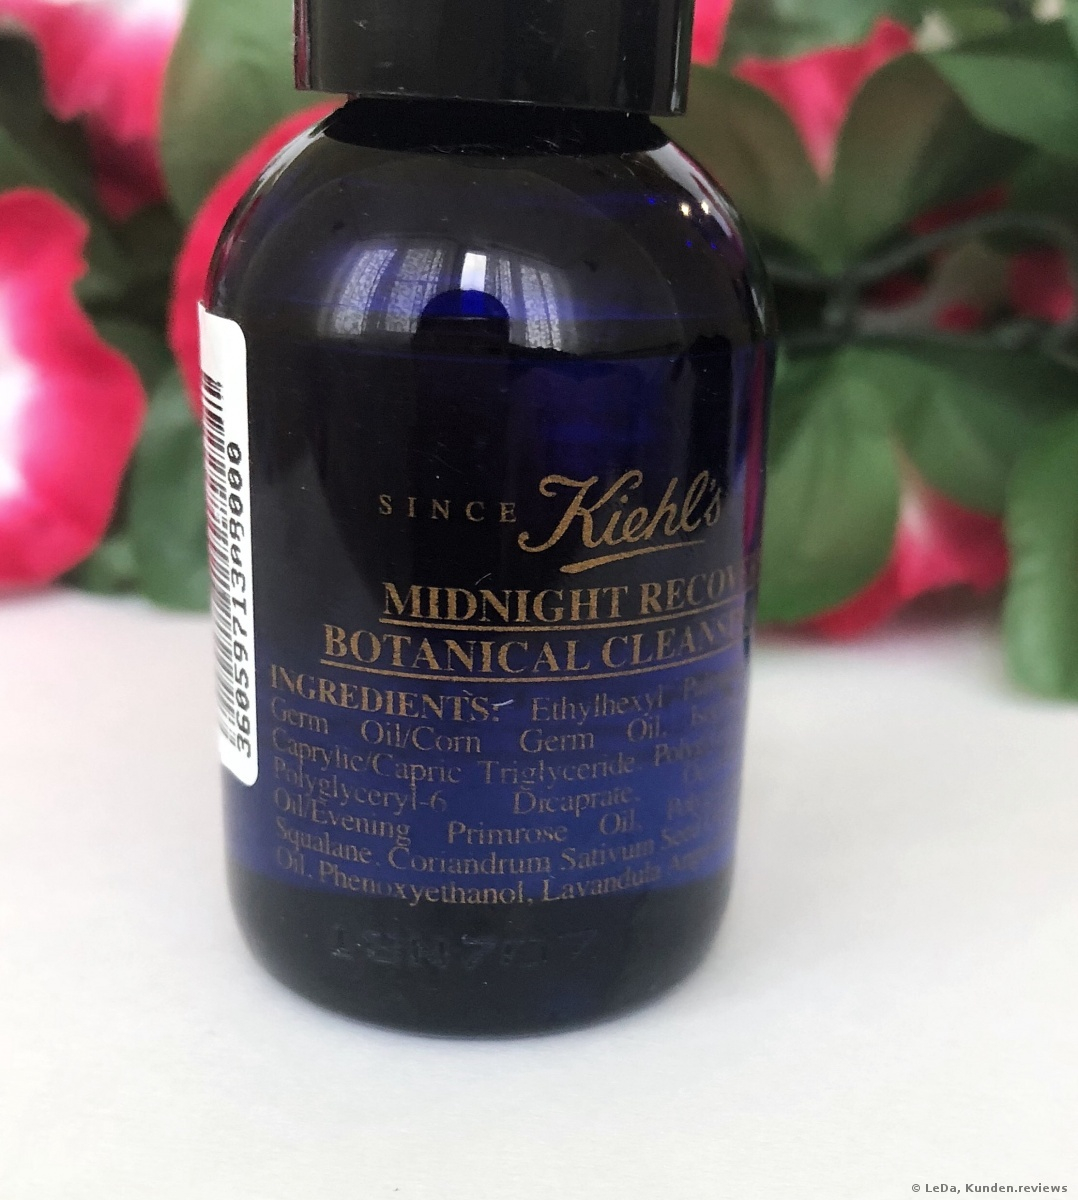 Reinigungsöl Midnight RecoveryBotanical Cleansing Oil von Kiehl´s